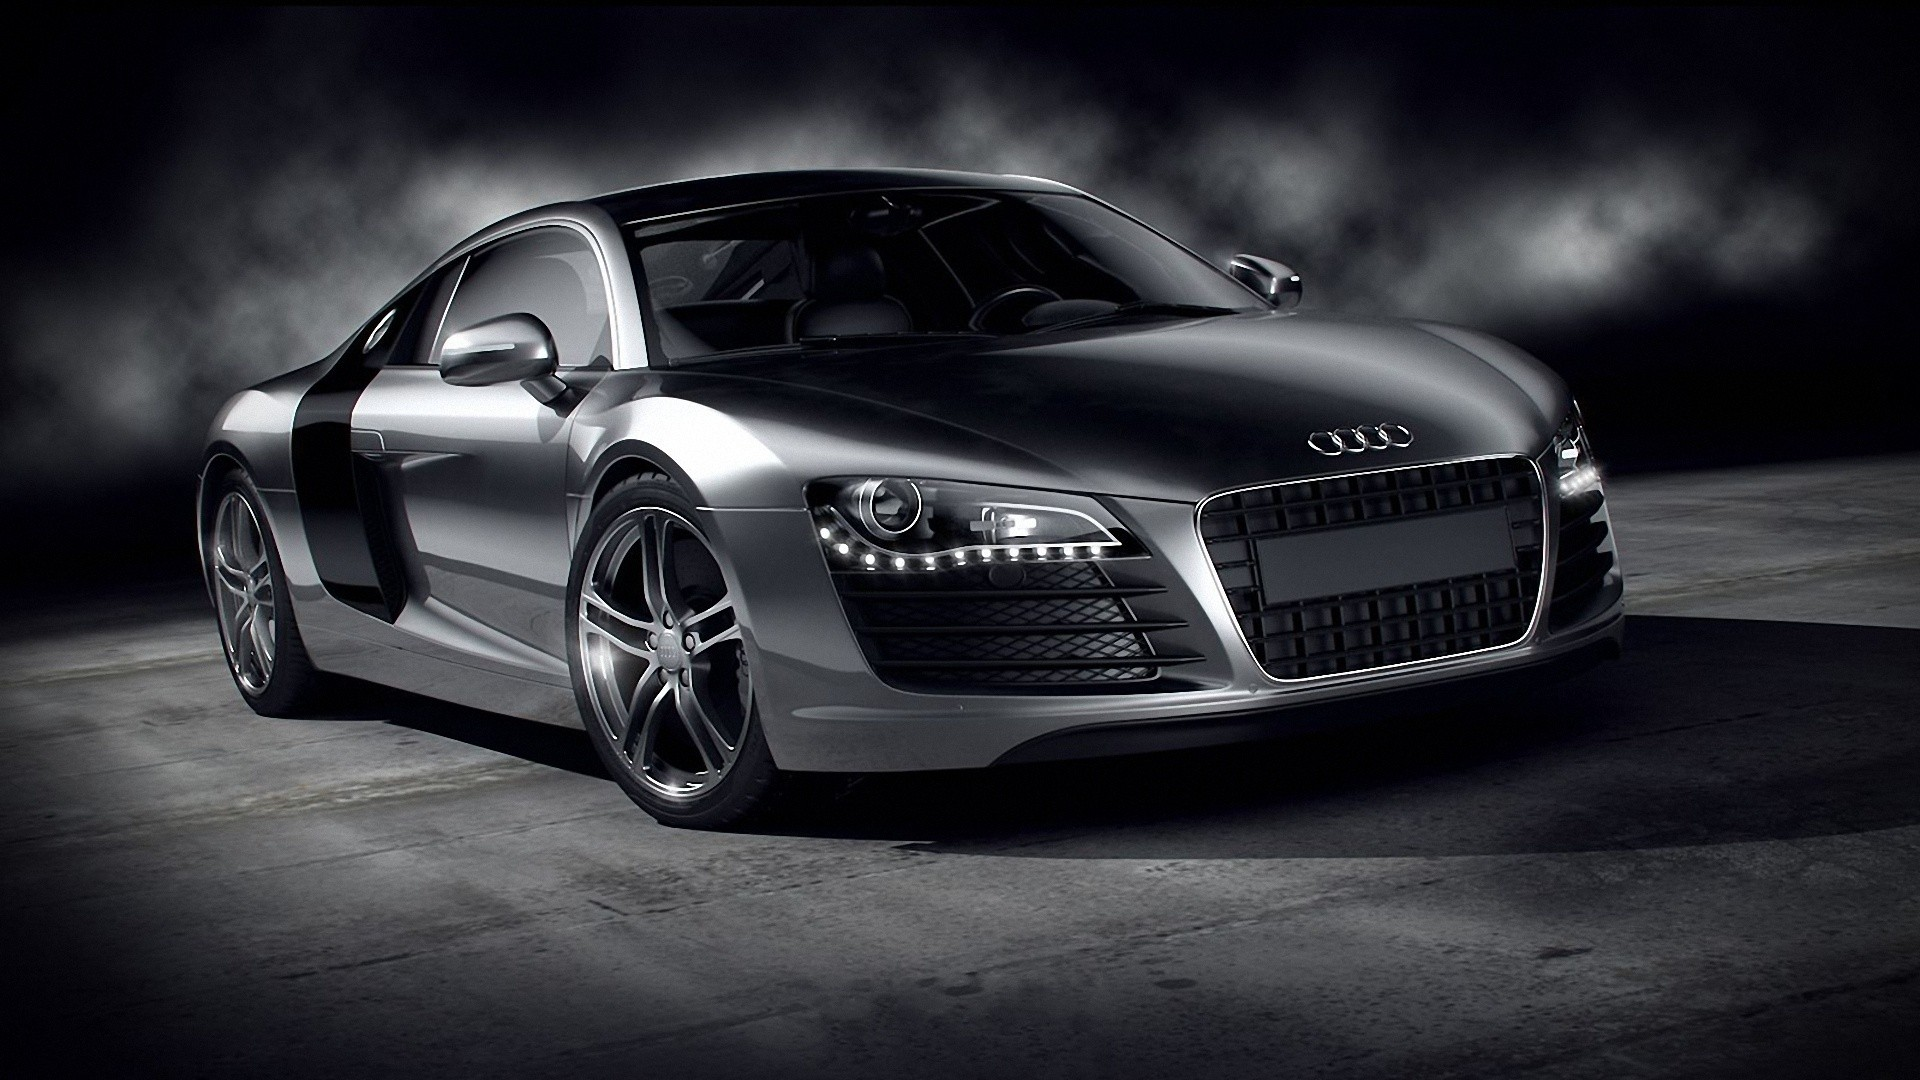 Cars Audi Wallpaper 1920x1080 Cars Audi Monochrome Audi R8 1920x1080